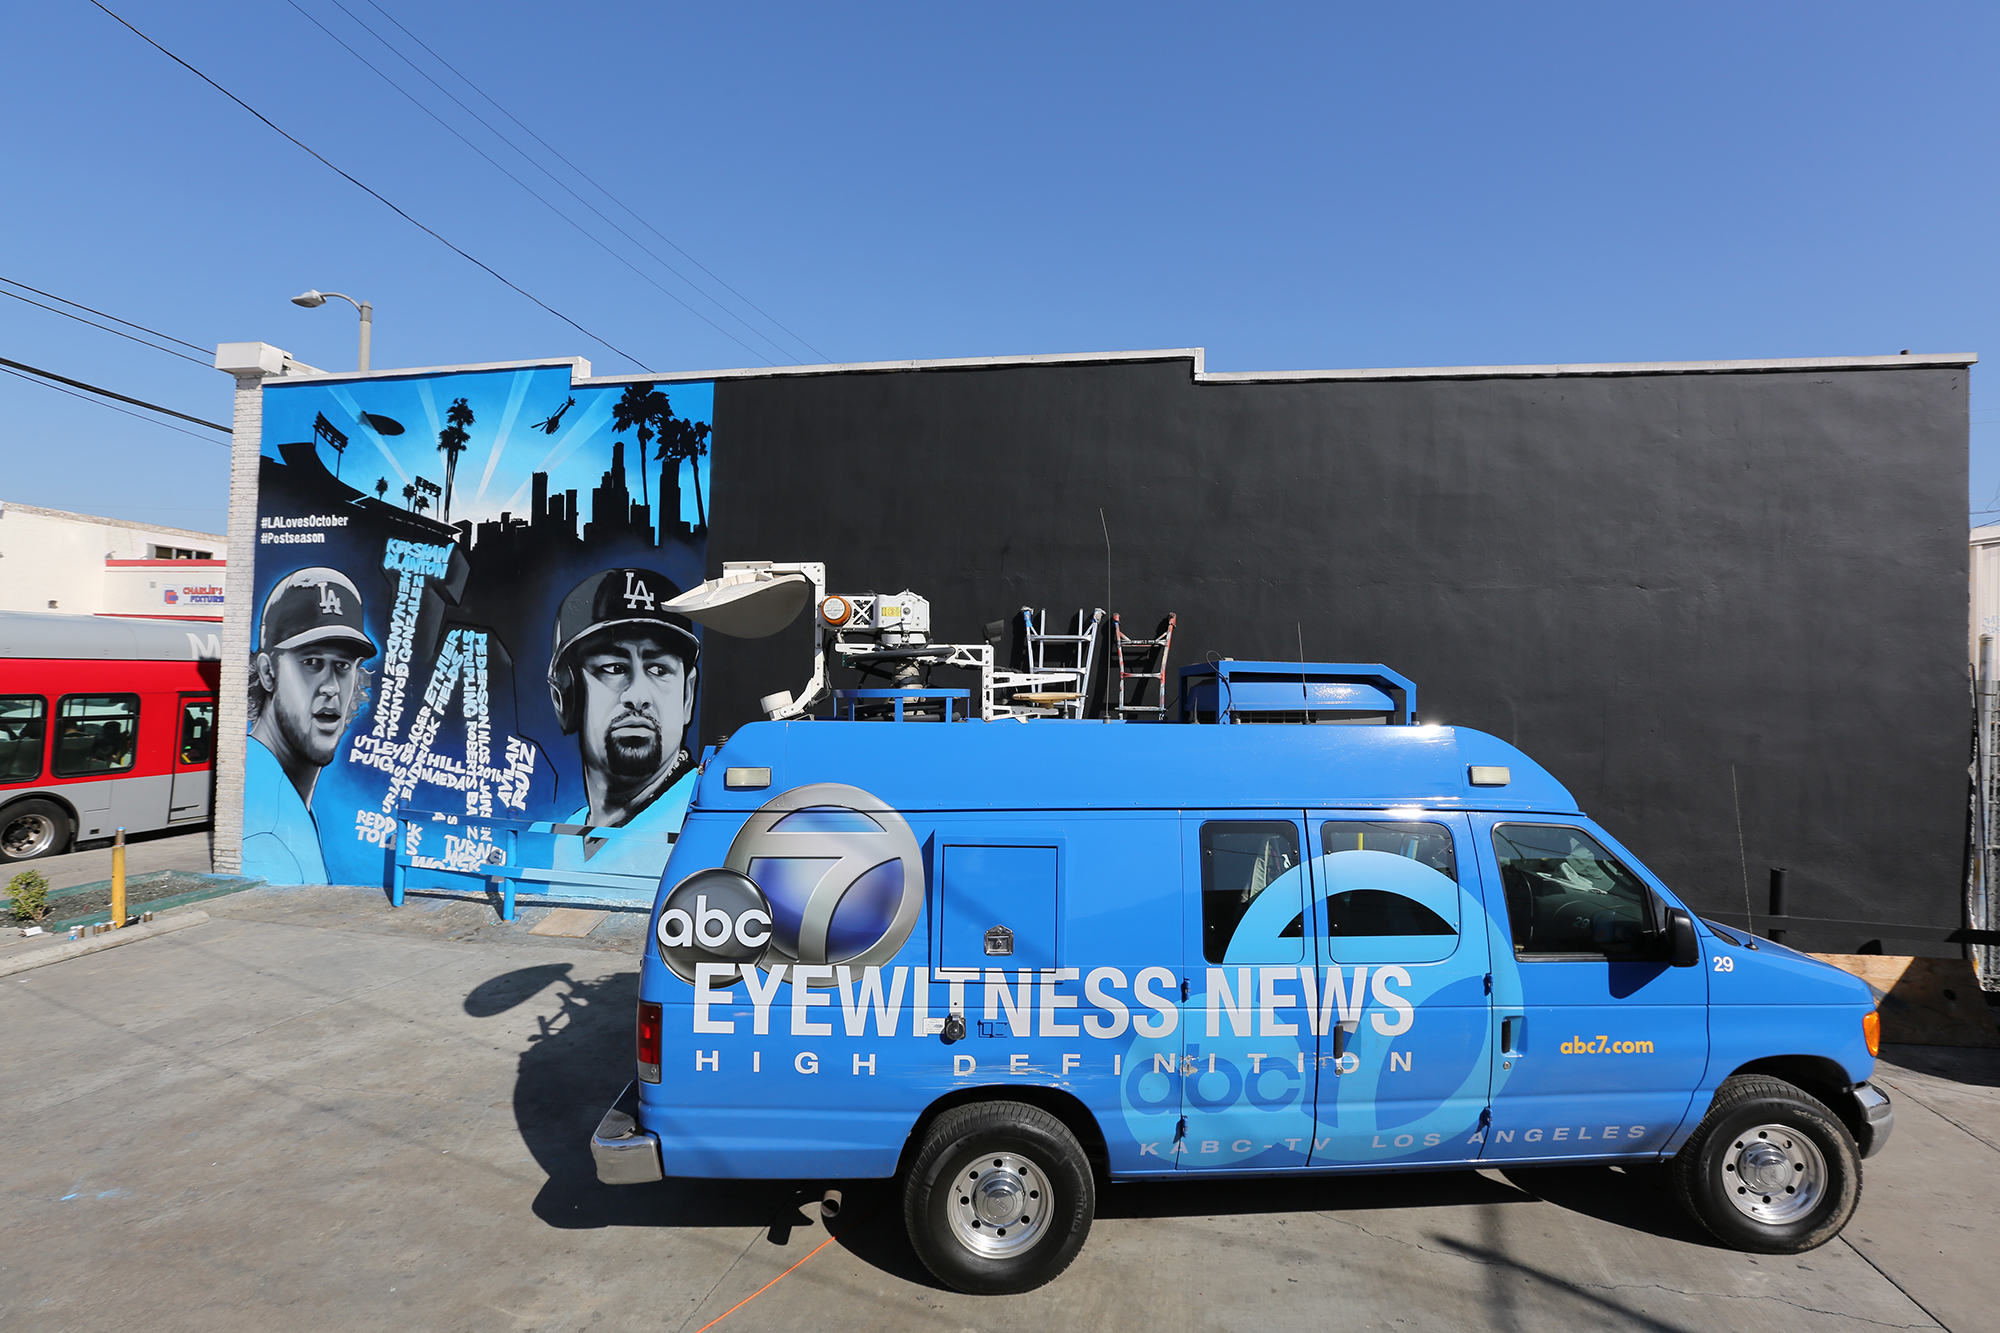 News Van for MLB Graffiti Mural